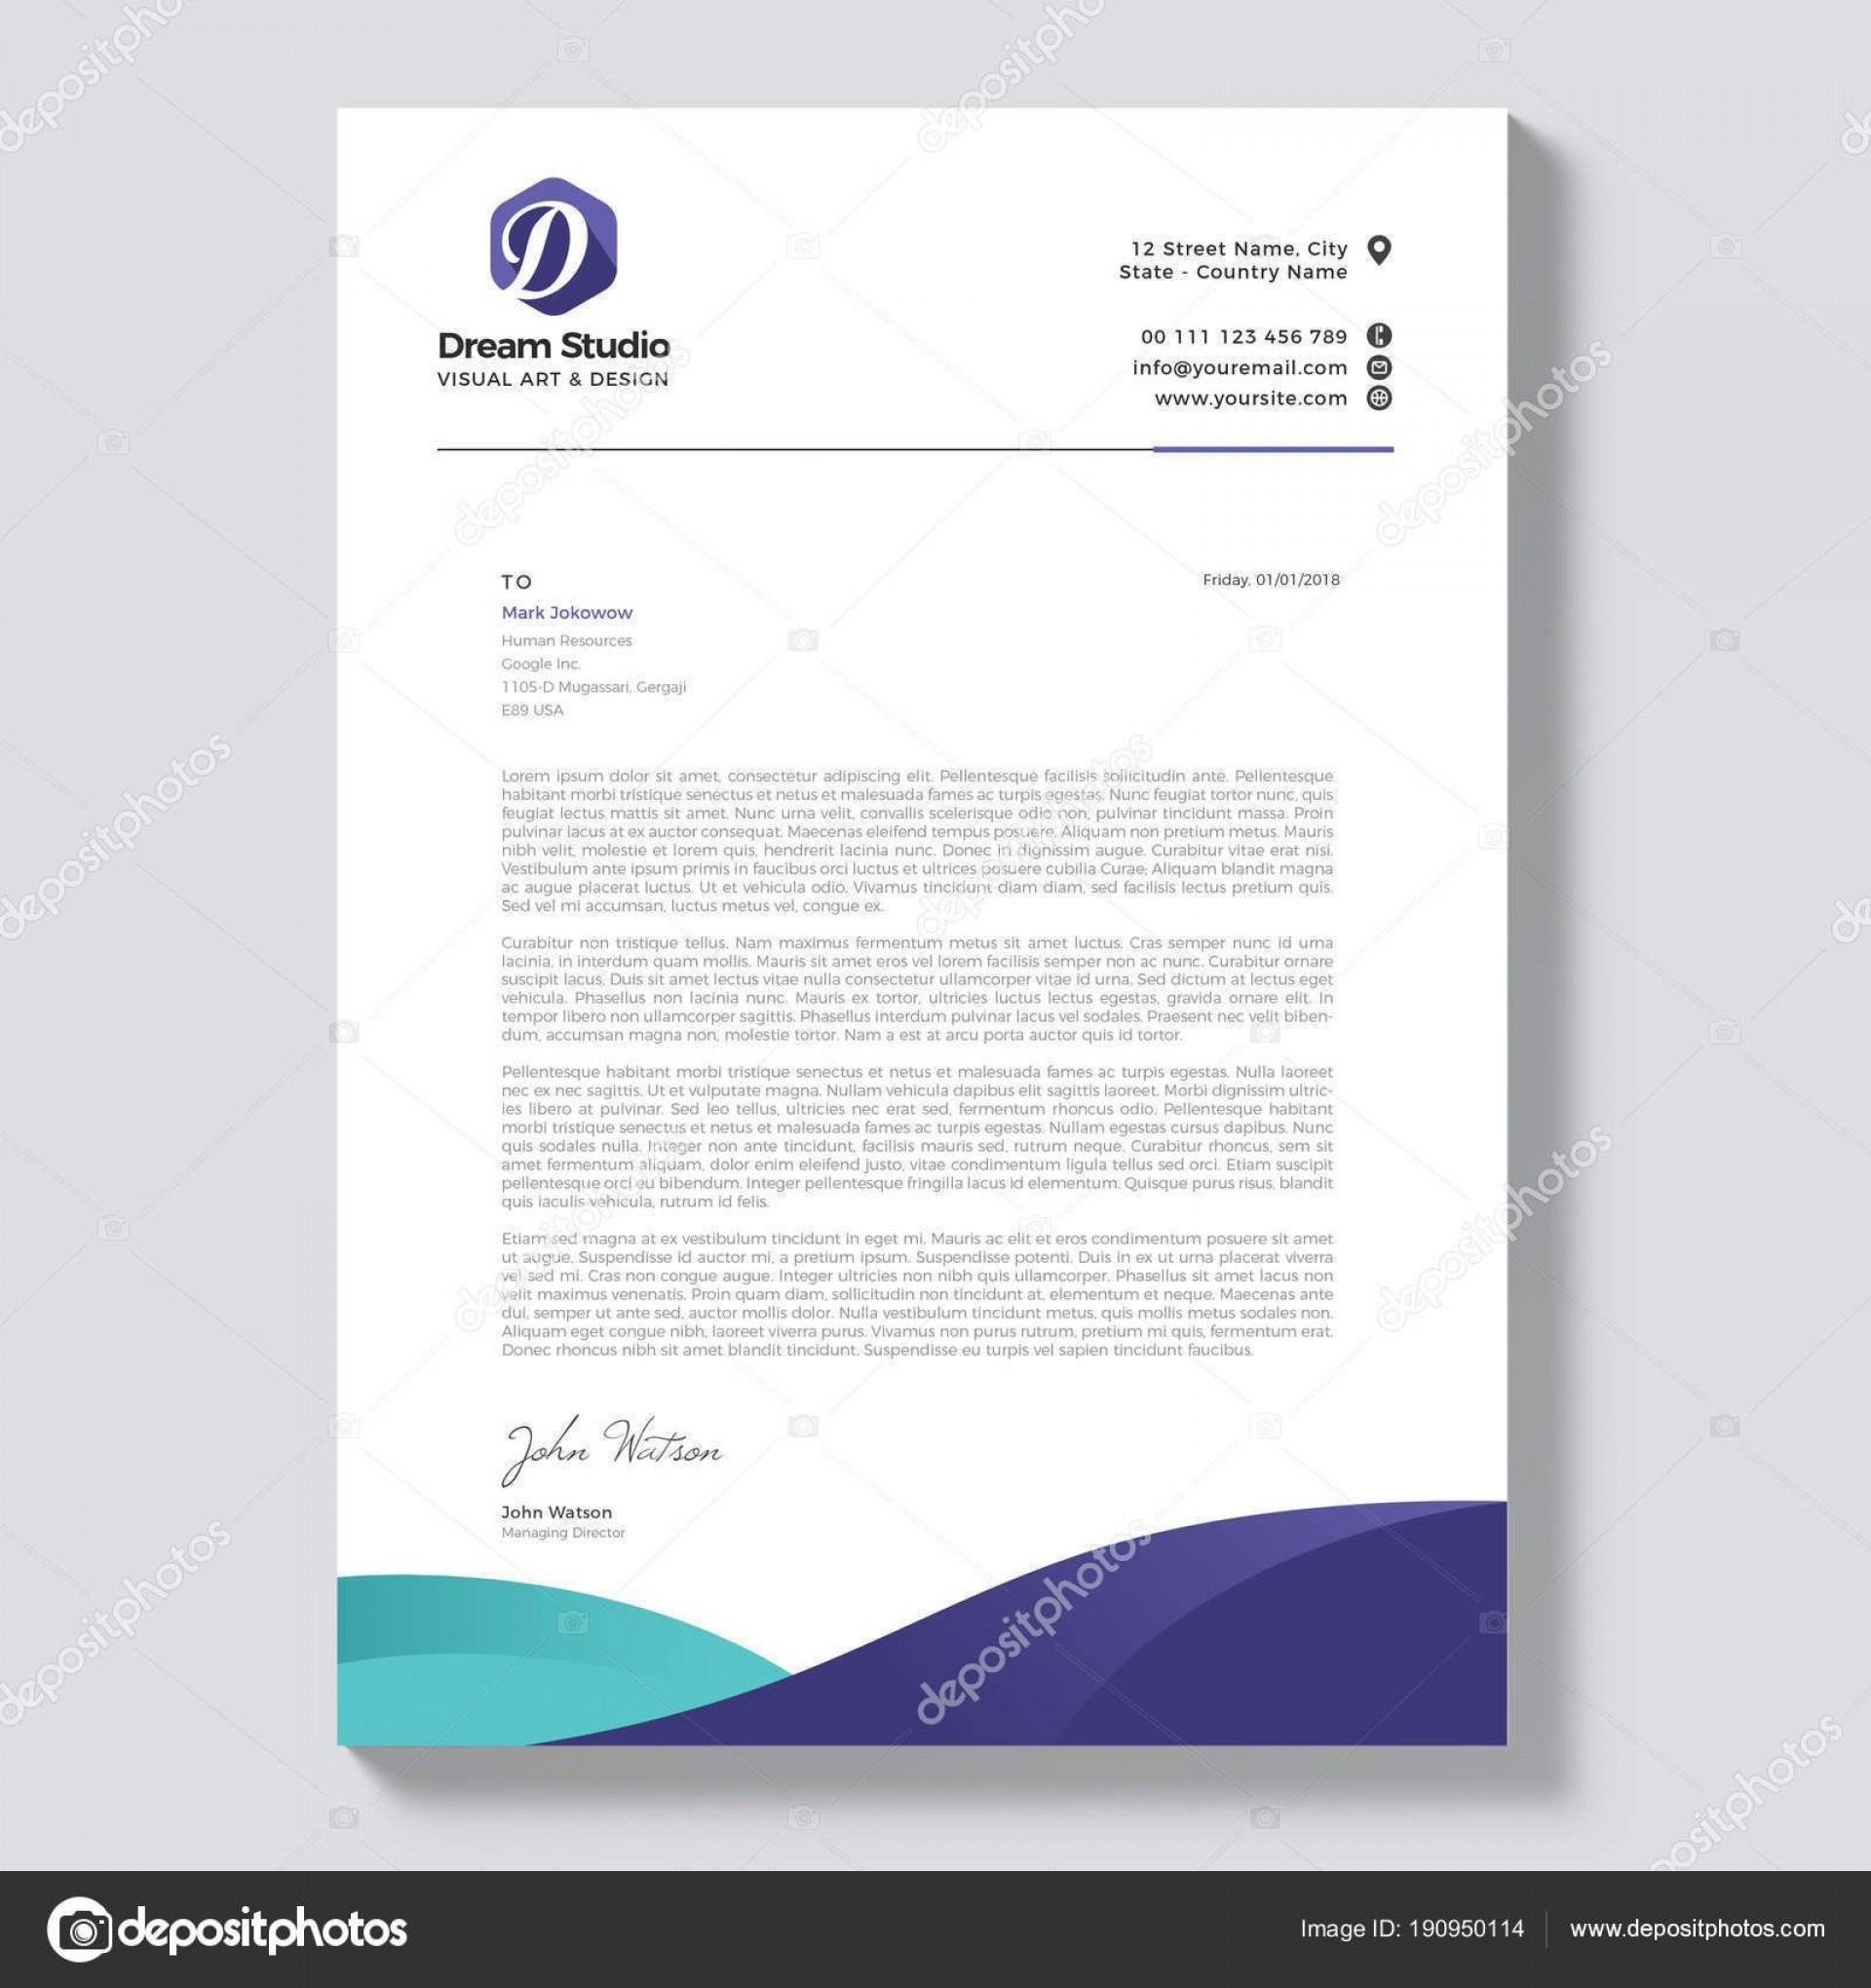 003 Shocking Letterhead Template Free Download Ai High Definition  File1920